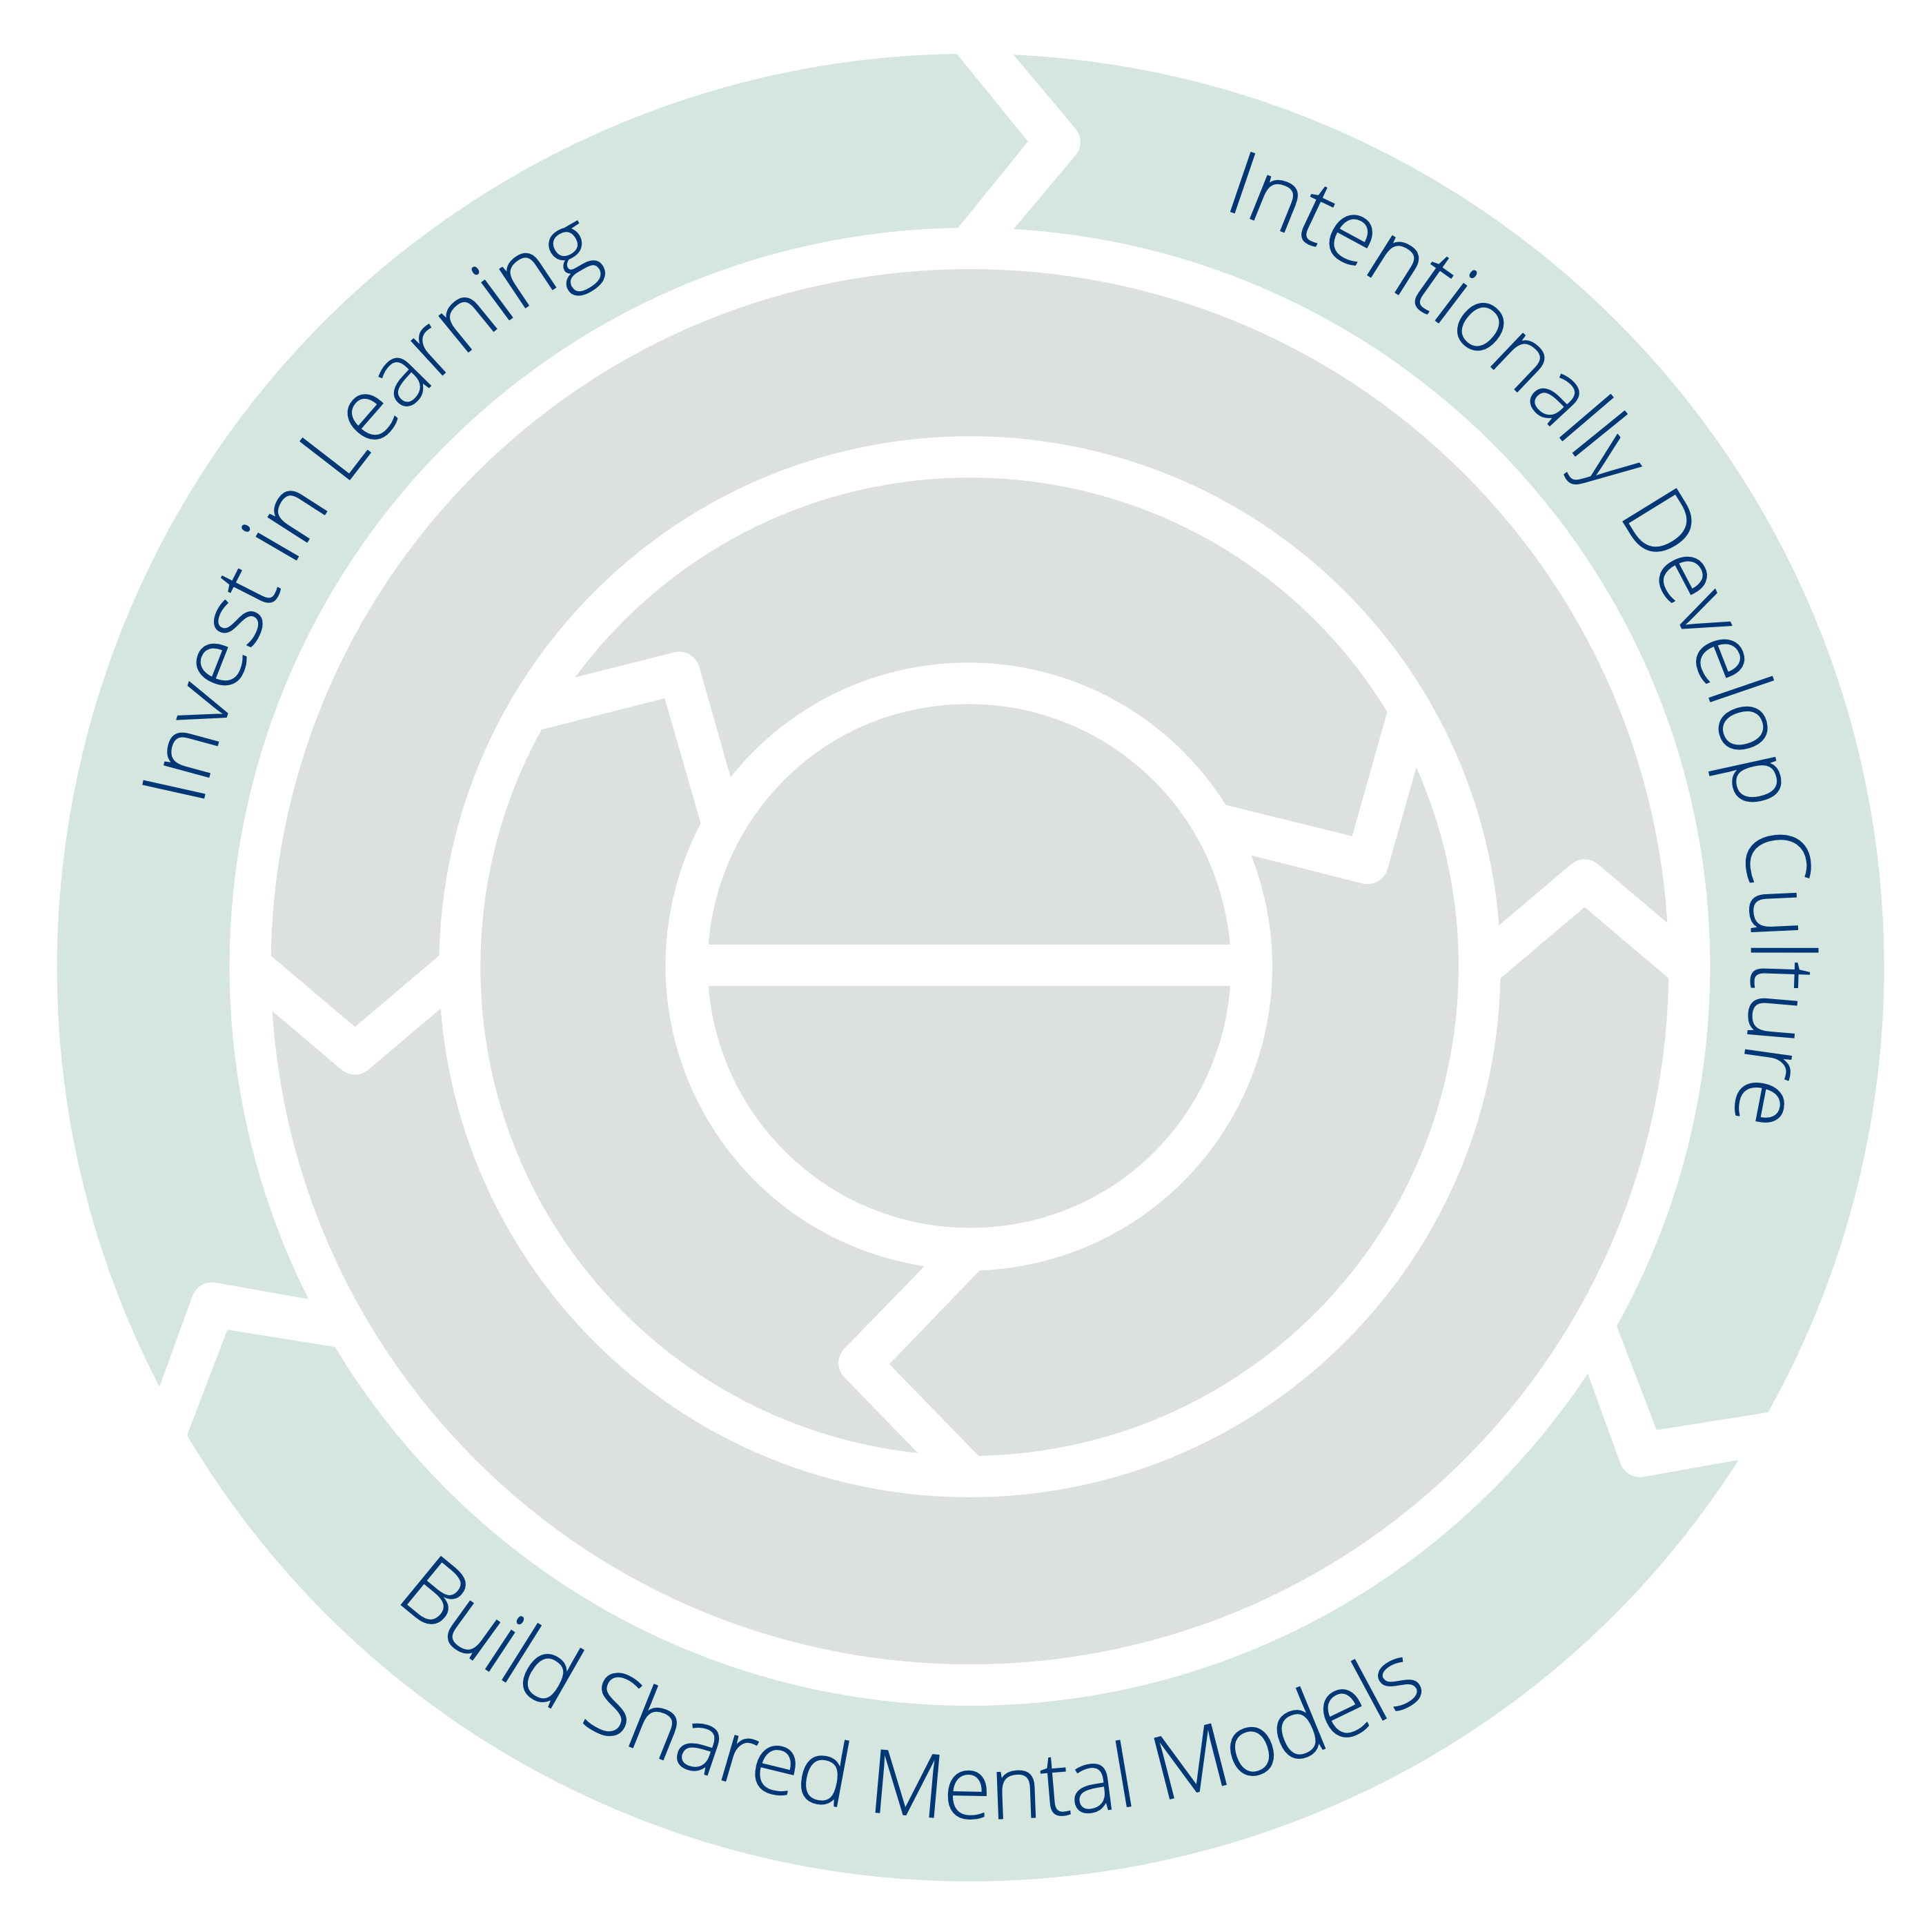 Three Principles for Transformation: Invest in Learning – Intentionally Develop Culture – Build Shared Mental Models